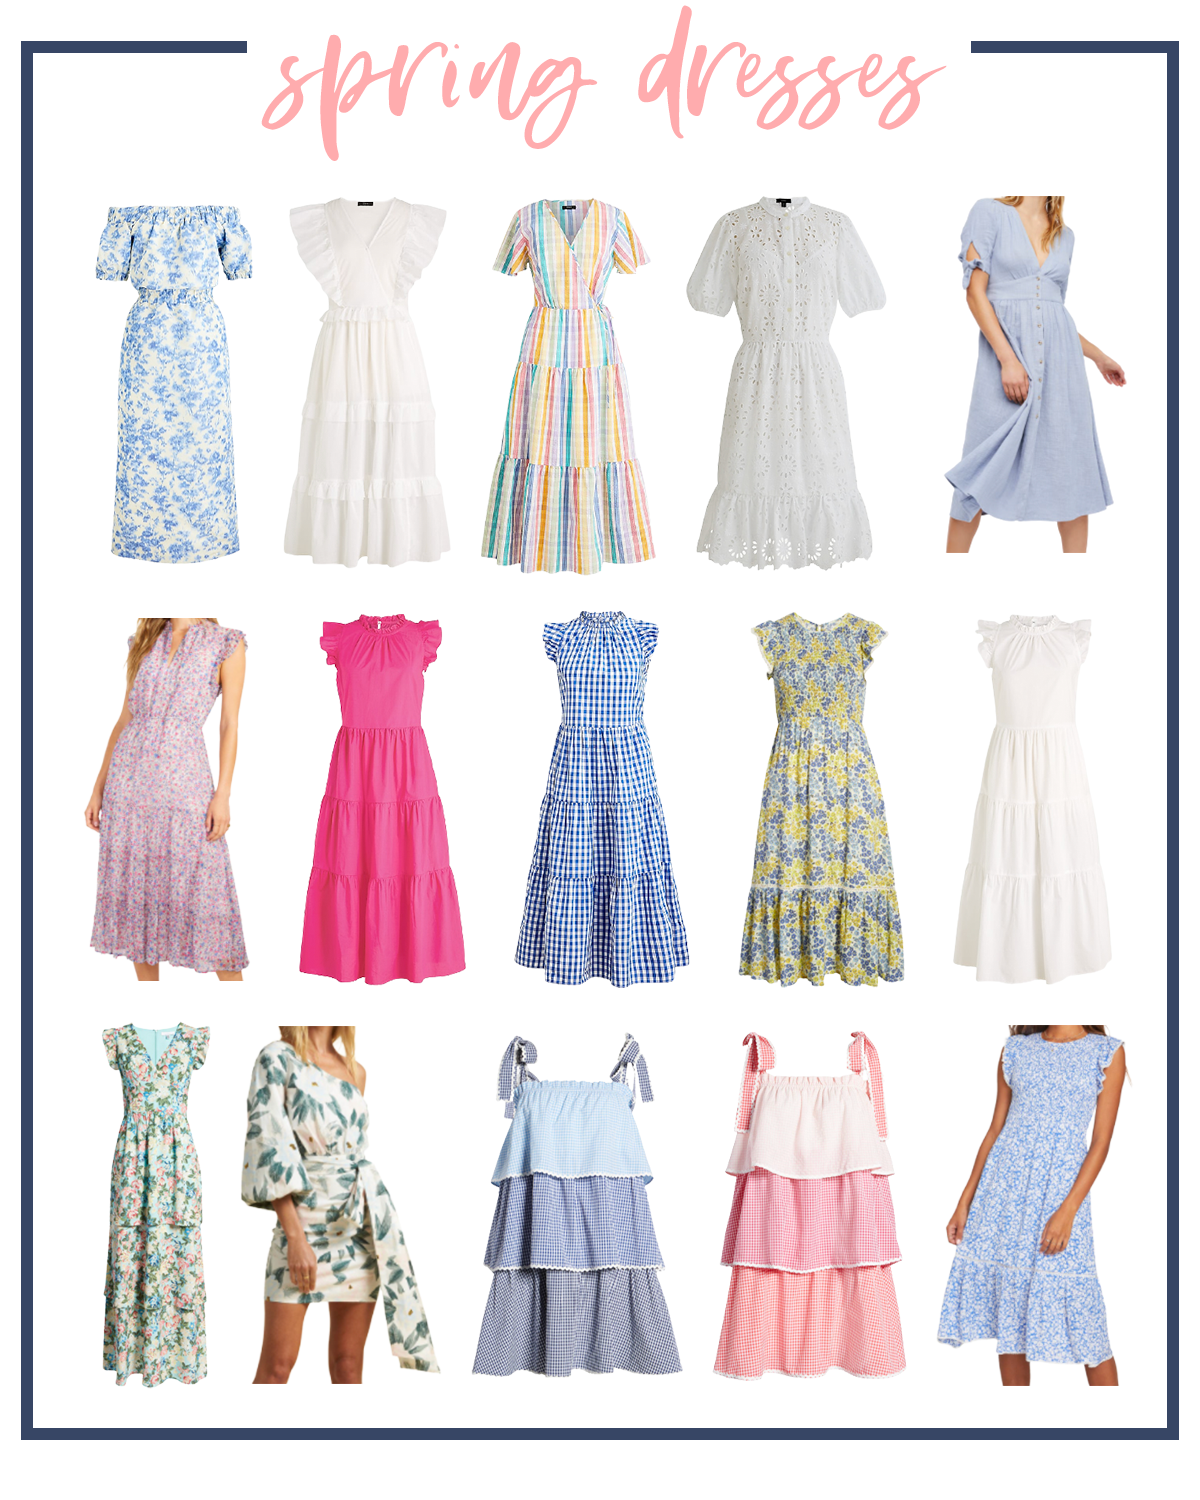 Spring Dresses by popular Houston fashion blog, Fancy Ashley: collage image of a off the shoulder blue and white floral print dress, white flutter sleeve maxi dress, multi color tiered maxi dress, white eyelet dress, blue tie sleeve dress, pink floral print dress, pink mock neck dress, blue gingham mock neck dress, blue and yellow floral maxi dress, white maxi dress, v-neck floral print maxi dress, one sleeve waist tie floral print dress, blue ombre tie strap dress, pink ombre tie strap dress, blue and white floral print dress.